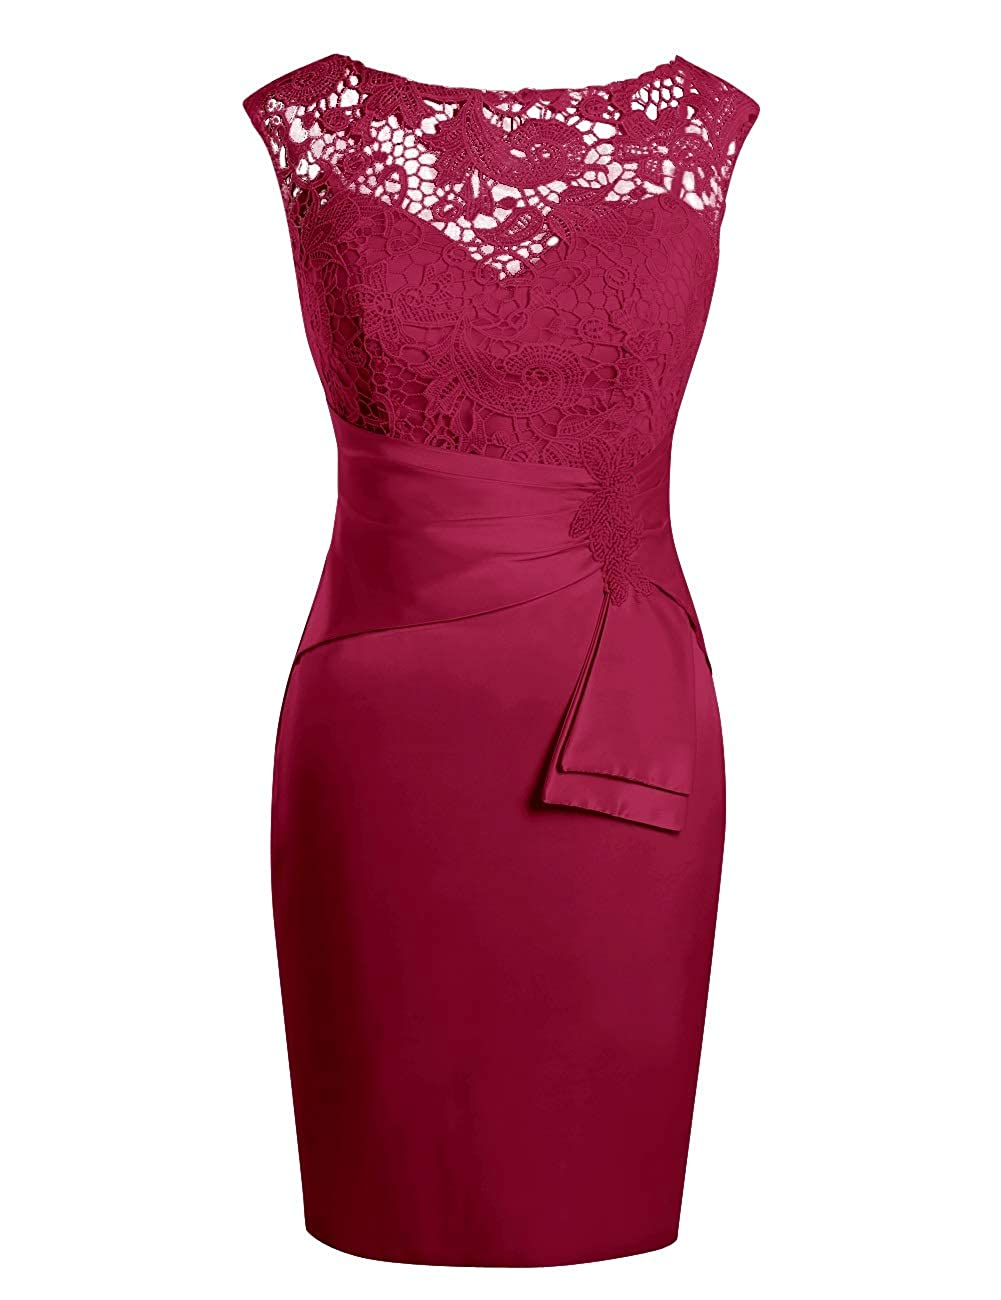 Burgundy MorySong Women's Hollow Out Lace Beading Knee Length Mother of The Bride Dress